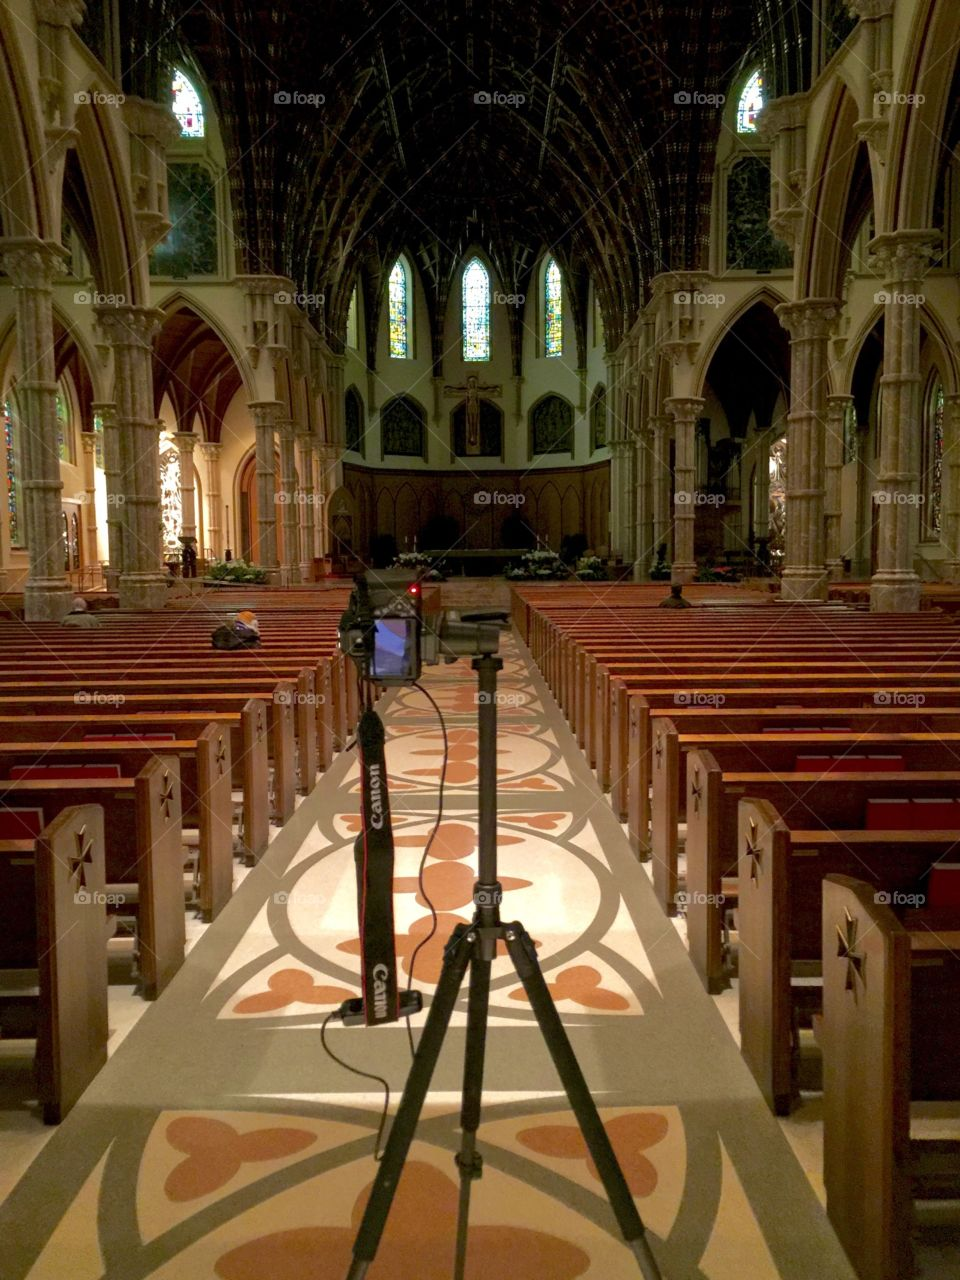 My camera capturing a long exposure if the dimly lit church.